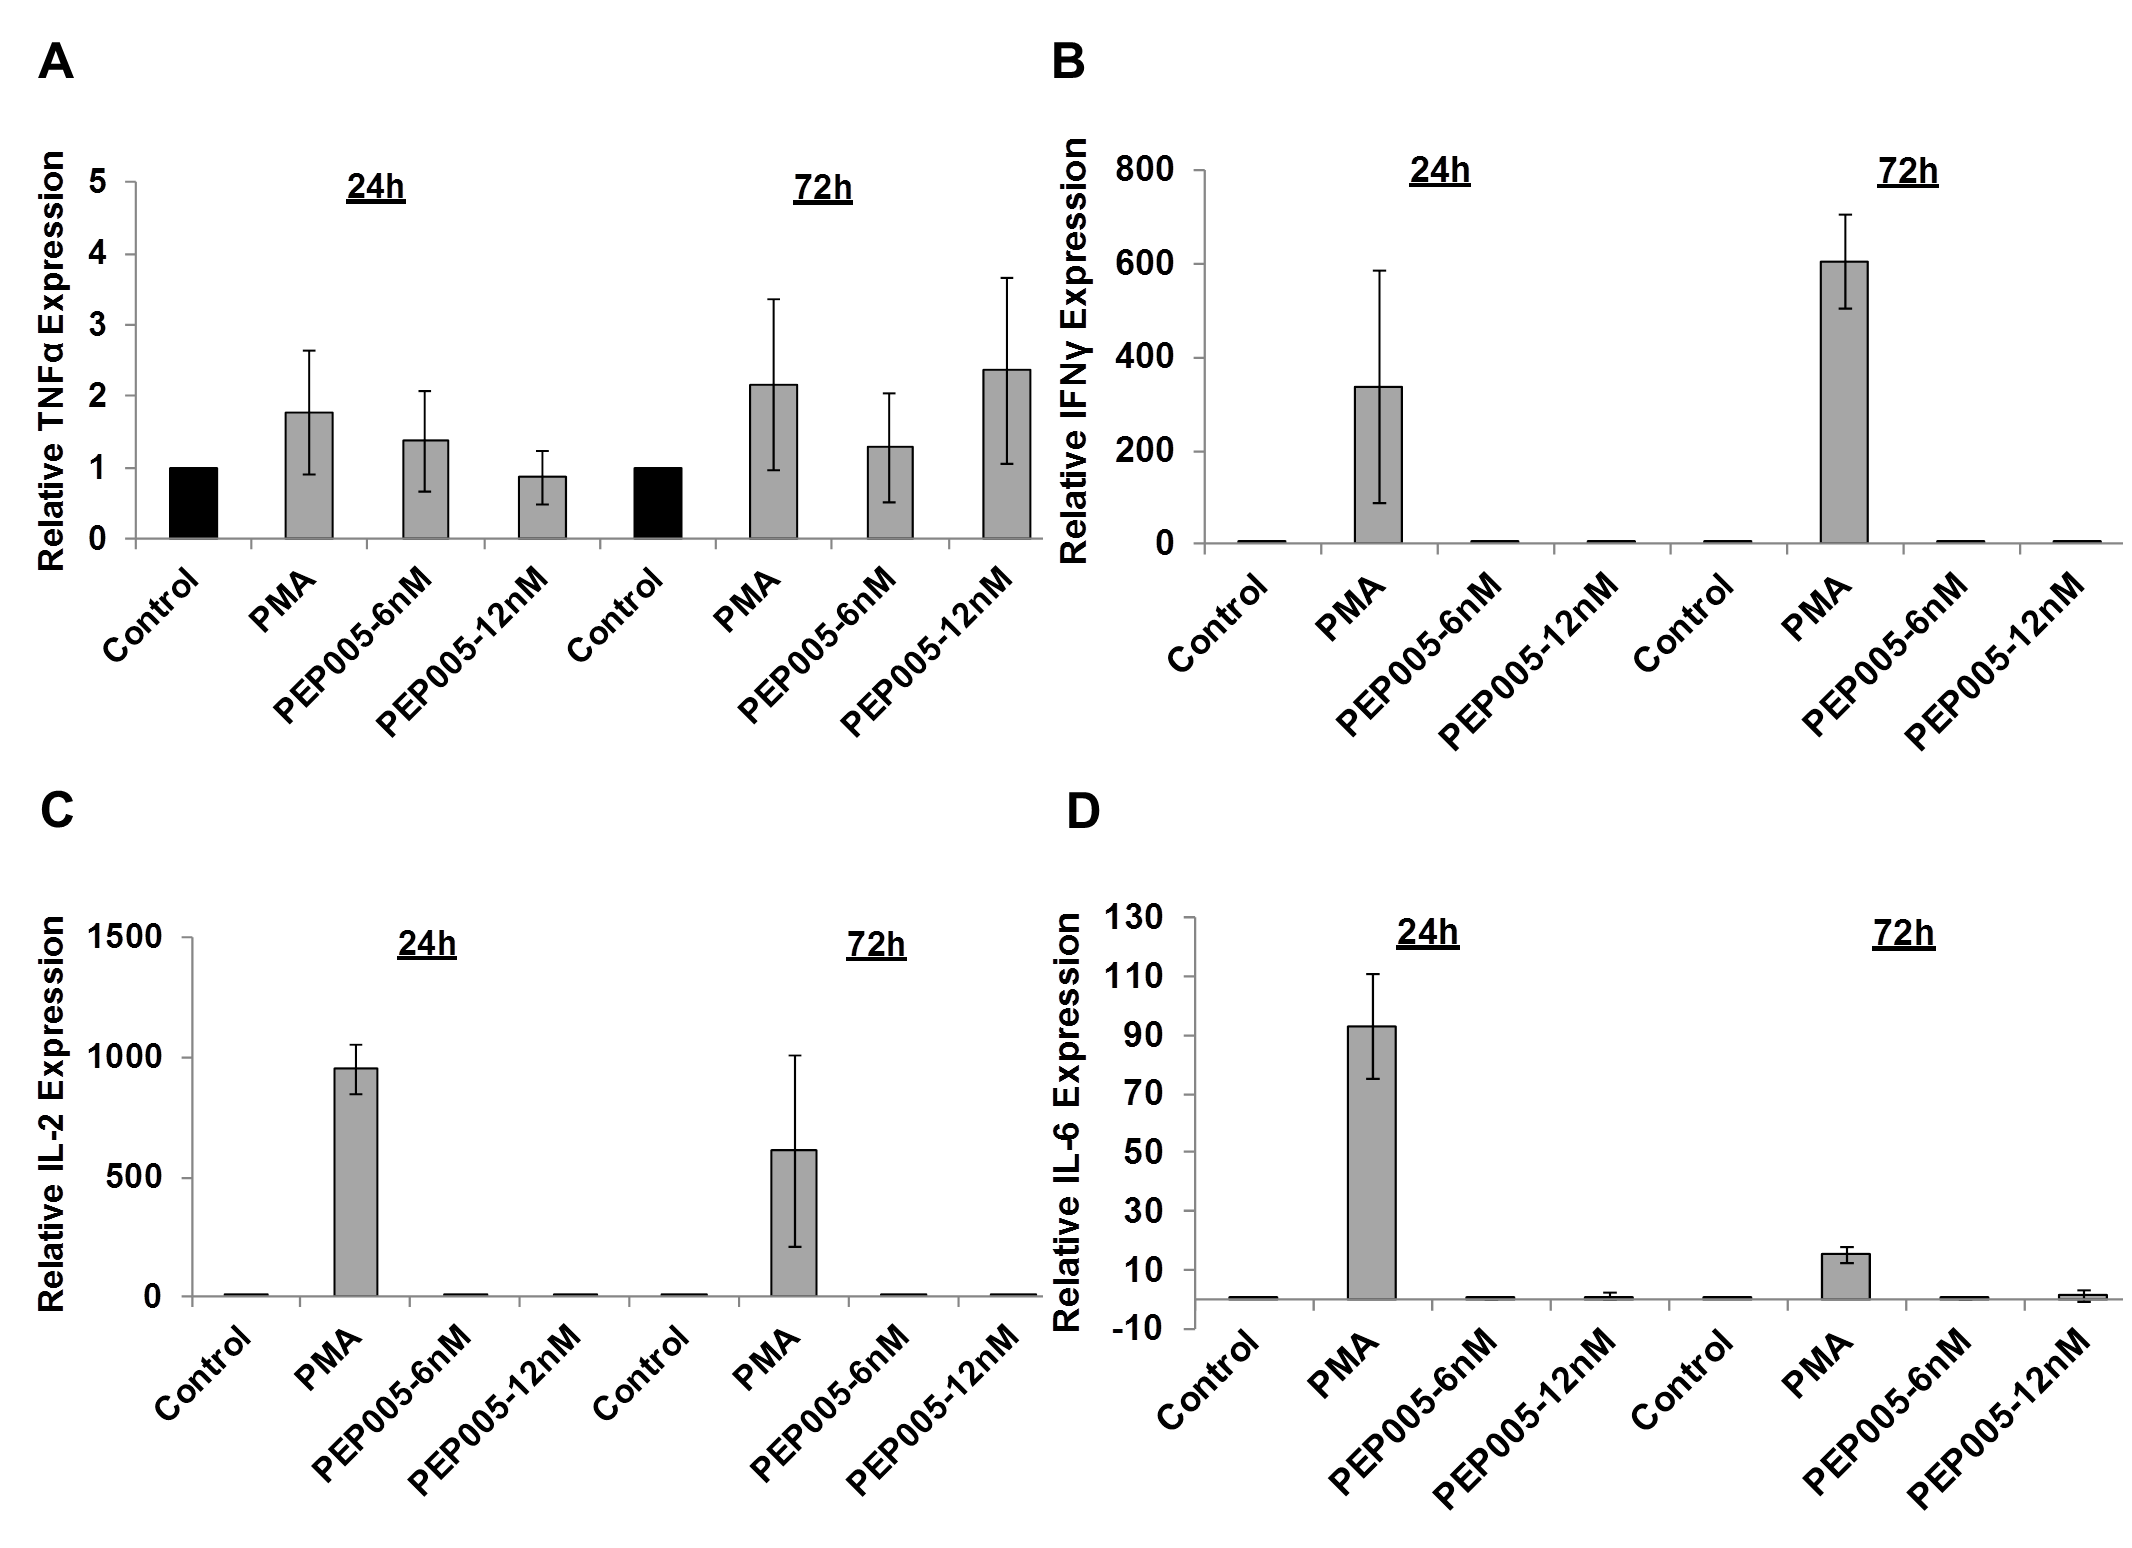 PEP005 does not induce expression of pro-inflammatory cytokines in primary CD4+ T cells from peripheral blood of HIV-negative donors.